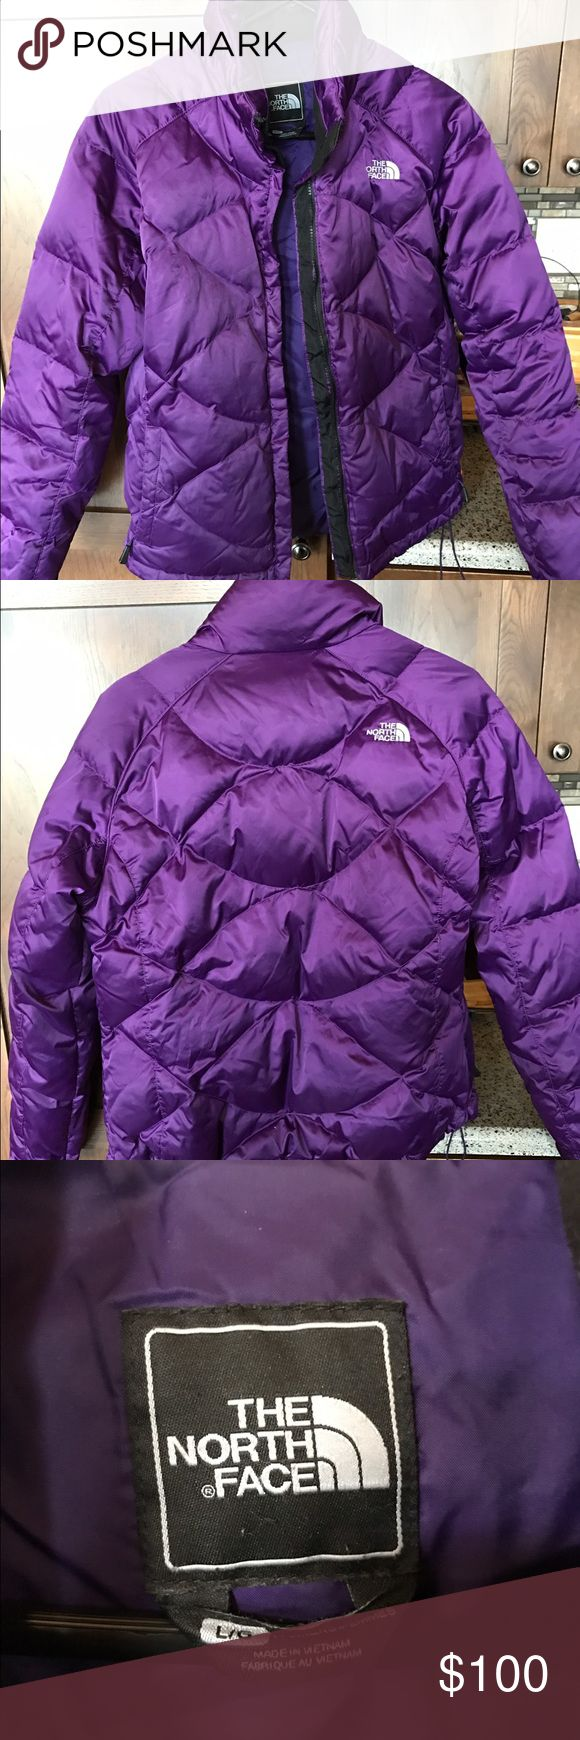 Women's Northface winter coat Women's northface winter coat The North Face Jackets & Coats Puffers